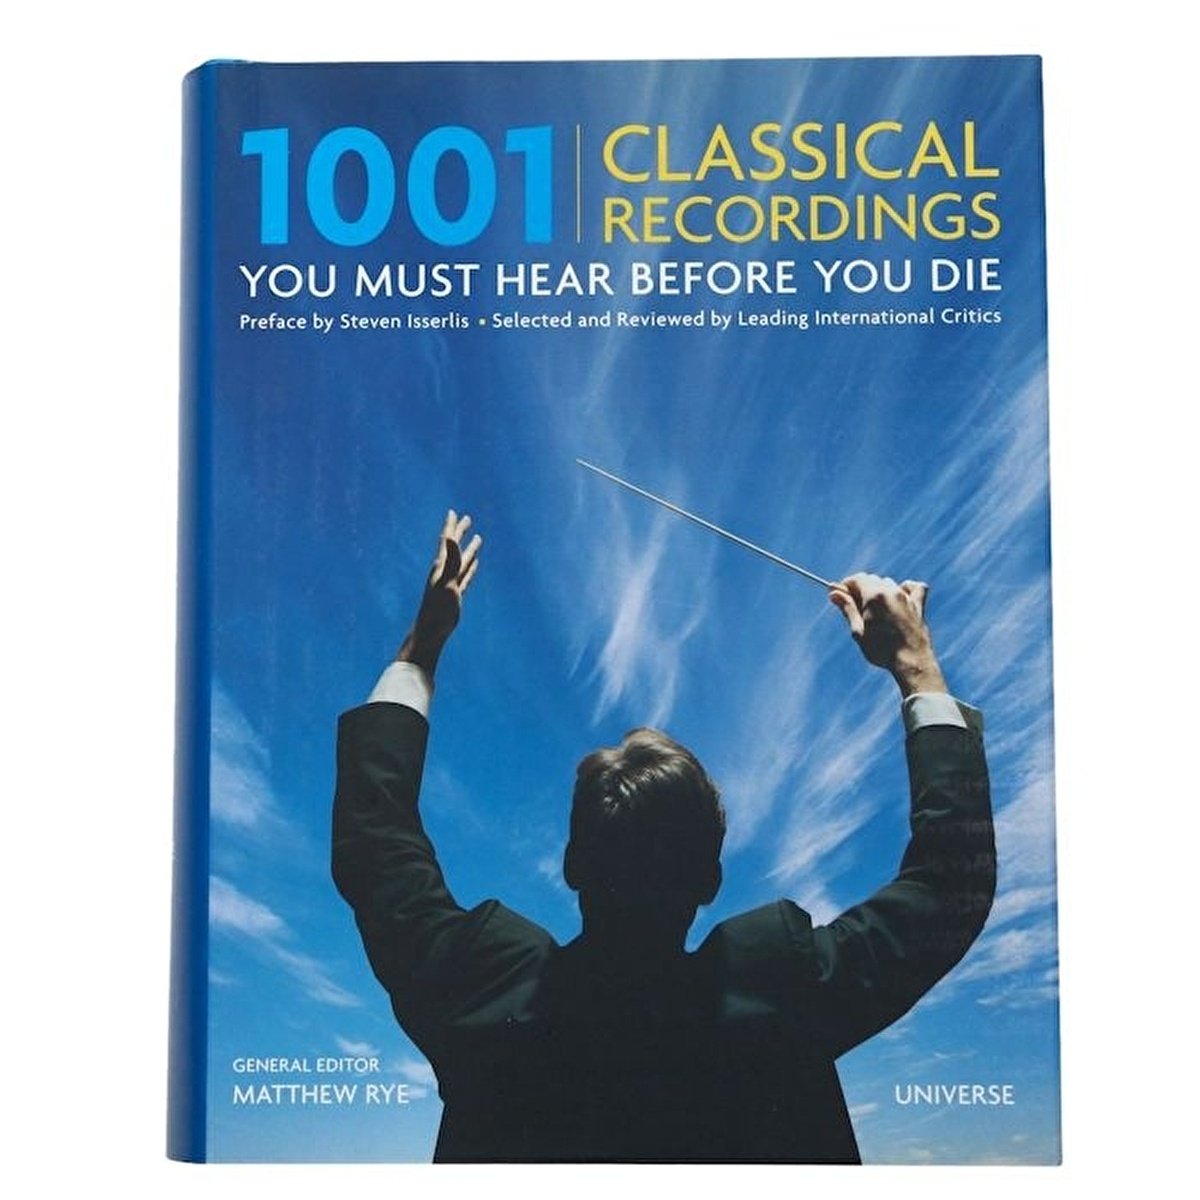 Garaj Kitap 1001 Classical Recordings You Must Hear Before You Die Renkli